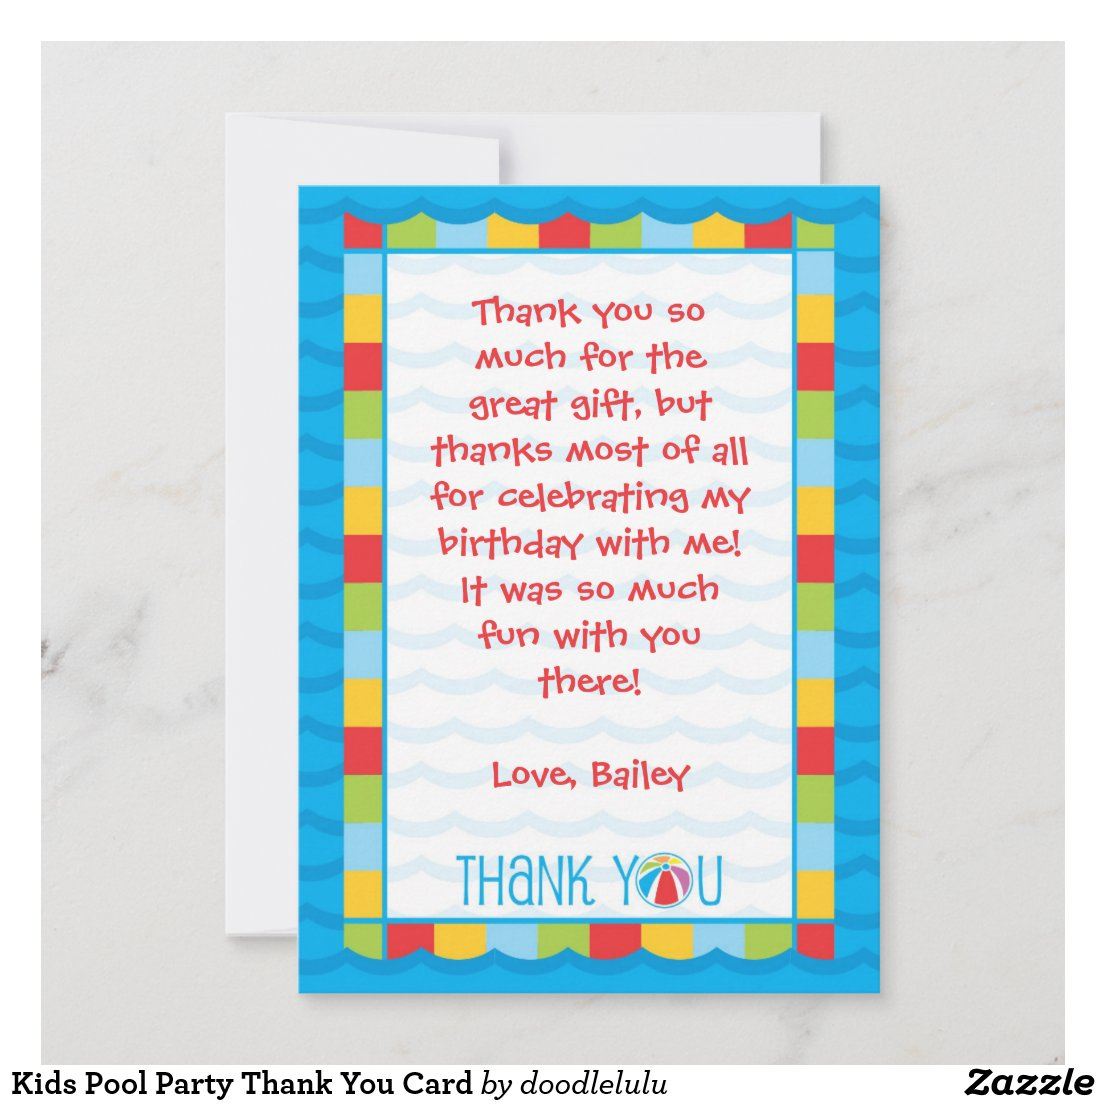 Kids Pool Party Thank You Card